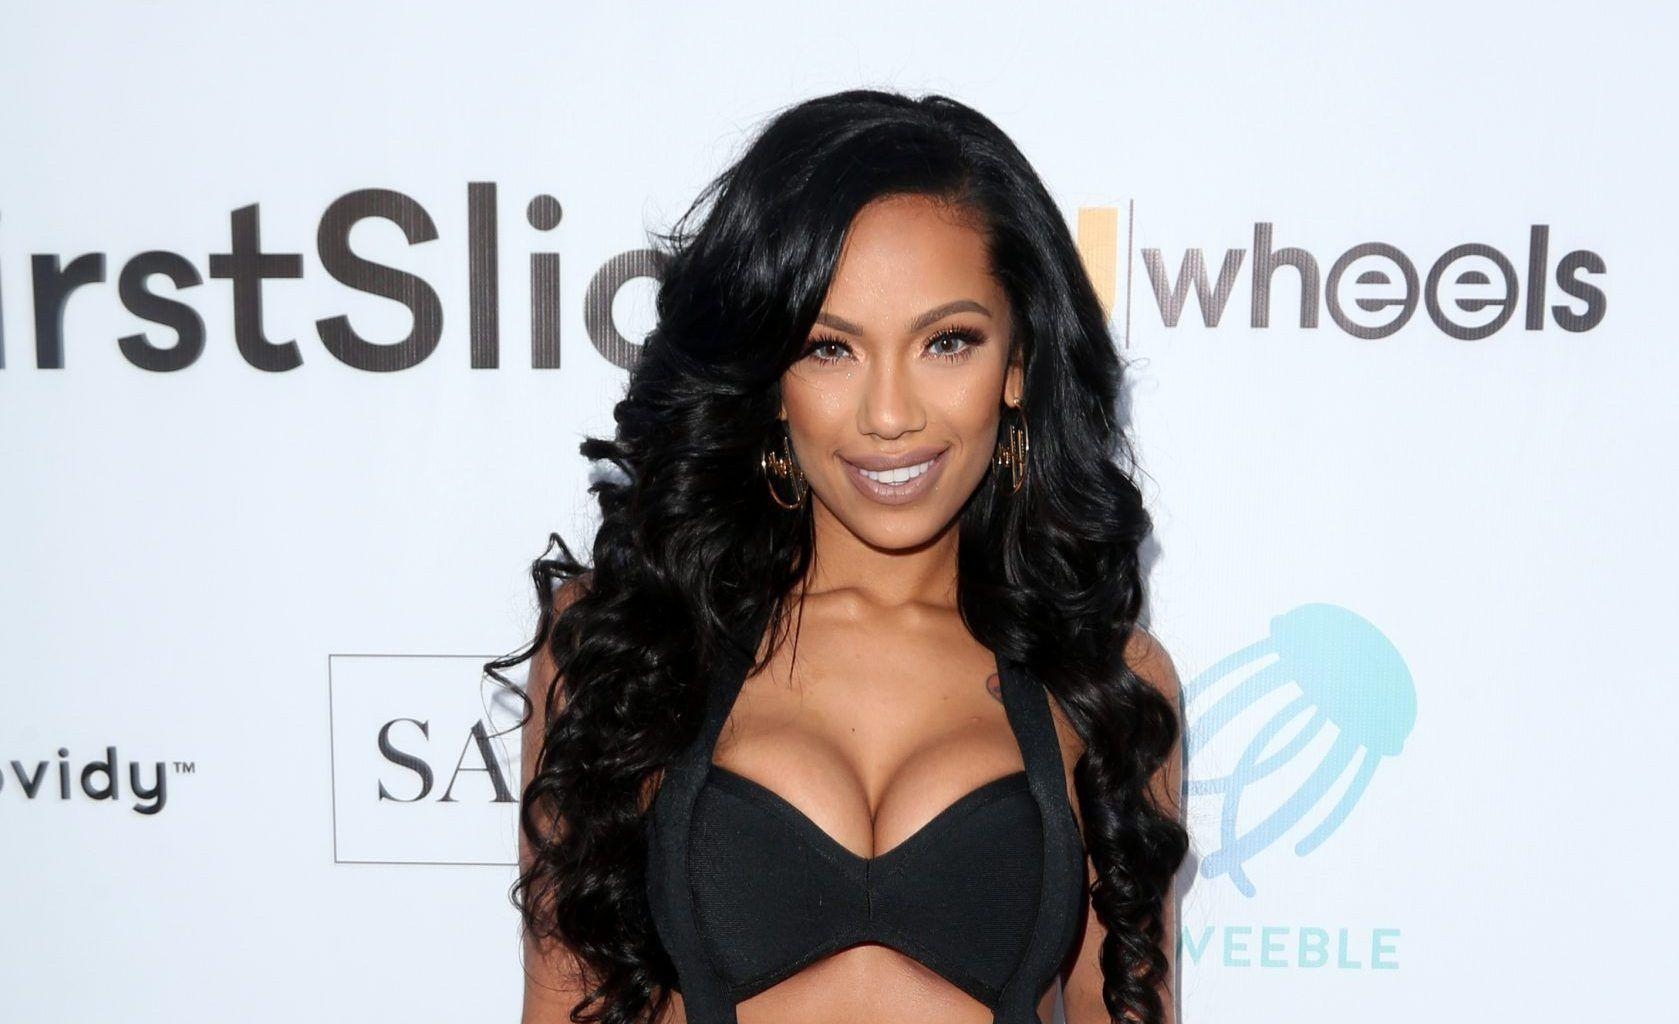 Erica Mena Blows Fans' Minds With A Massive Cleavage - See Her Daring Outfit